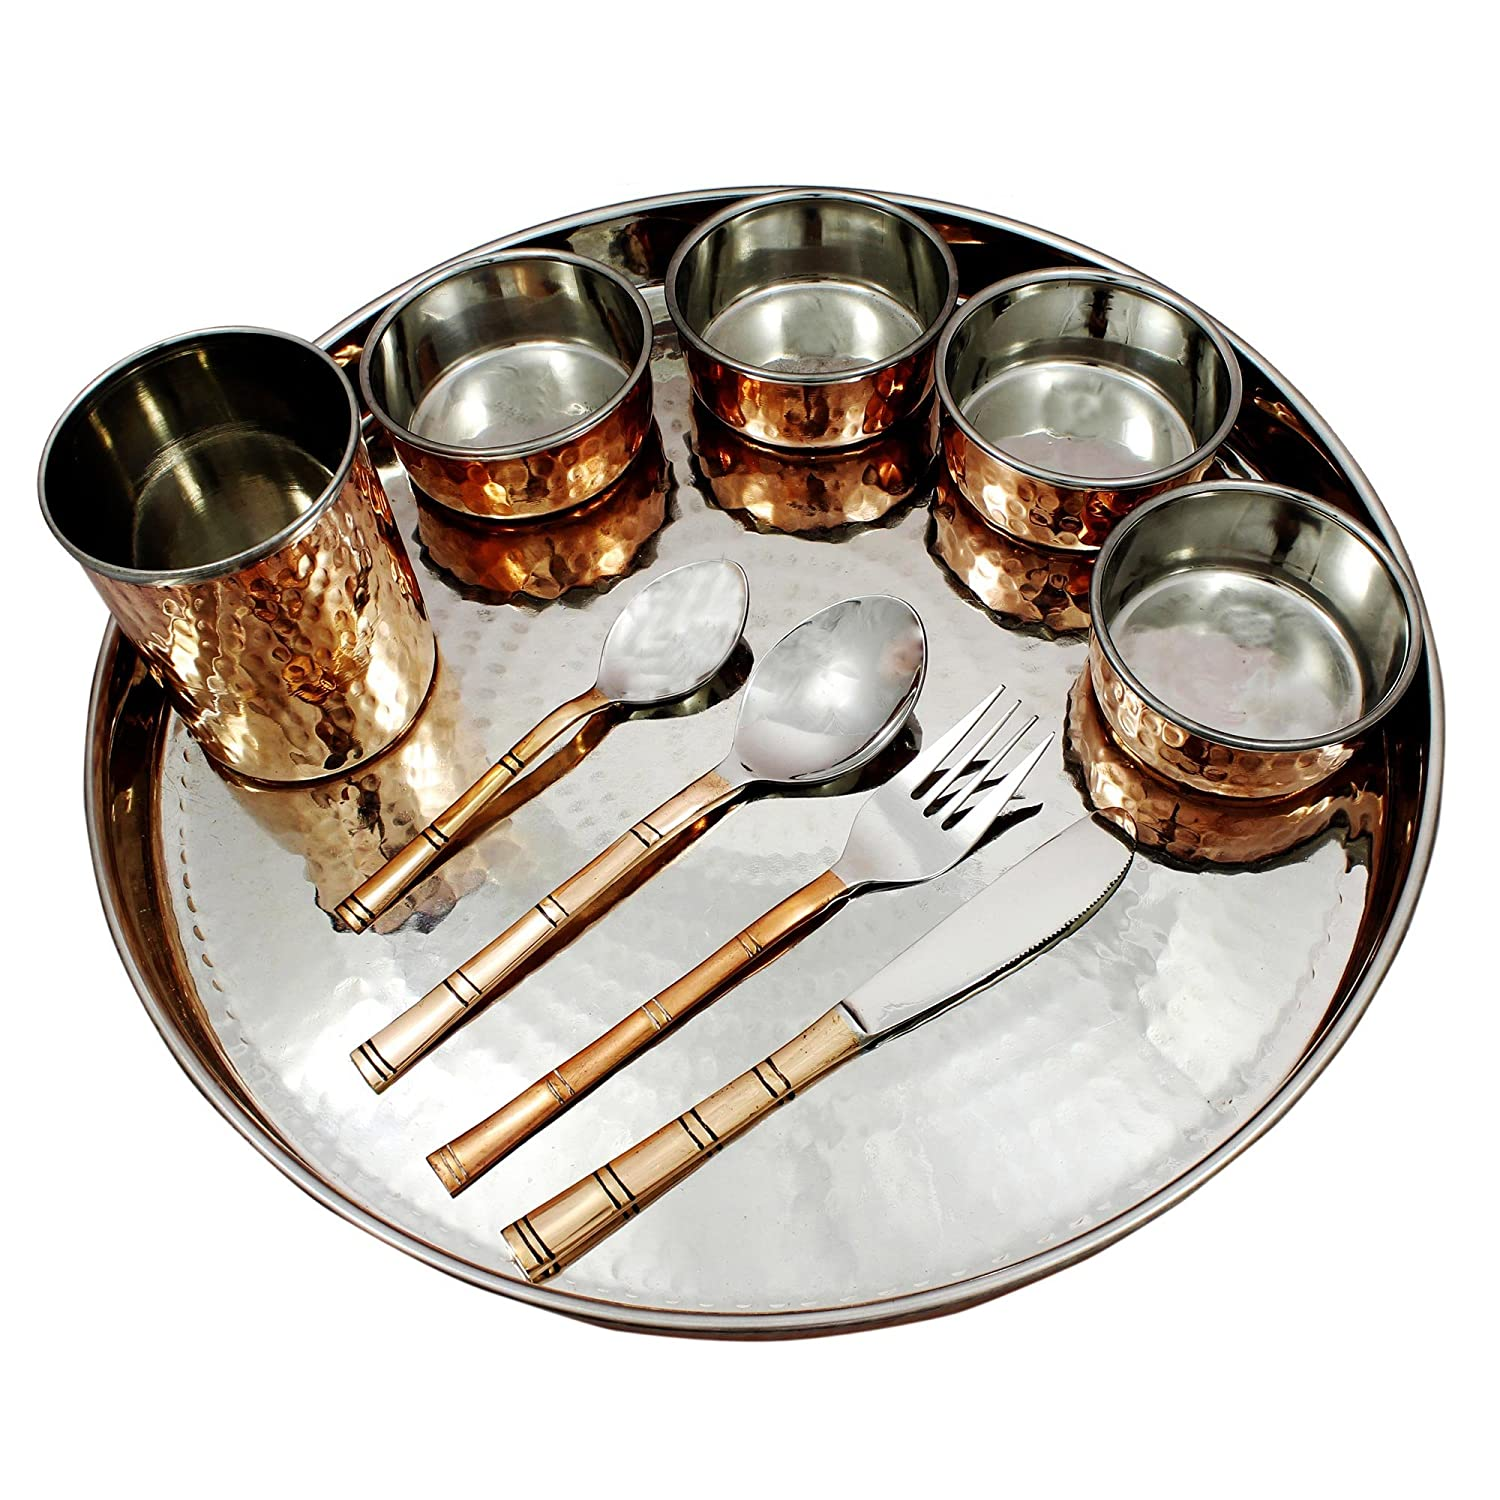 Amazon.com | Dinnerware Set Service for 1 Dinner Plates Bowls Mugs and Cutlery Set 10 -Piece Set Copper Stainless Steel Dinnerware Sets  sc 1 st  Amazon.com & Amazon.com | Dinnerware Set Service for 1 Dinner Plates Bowls Mugs ...